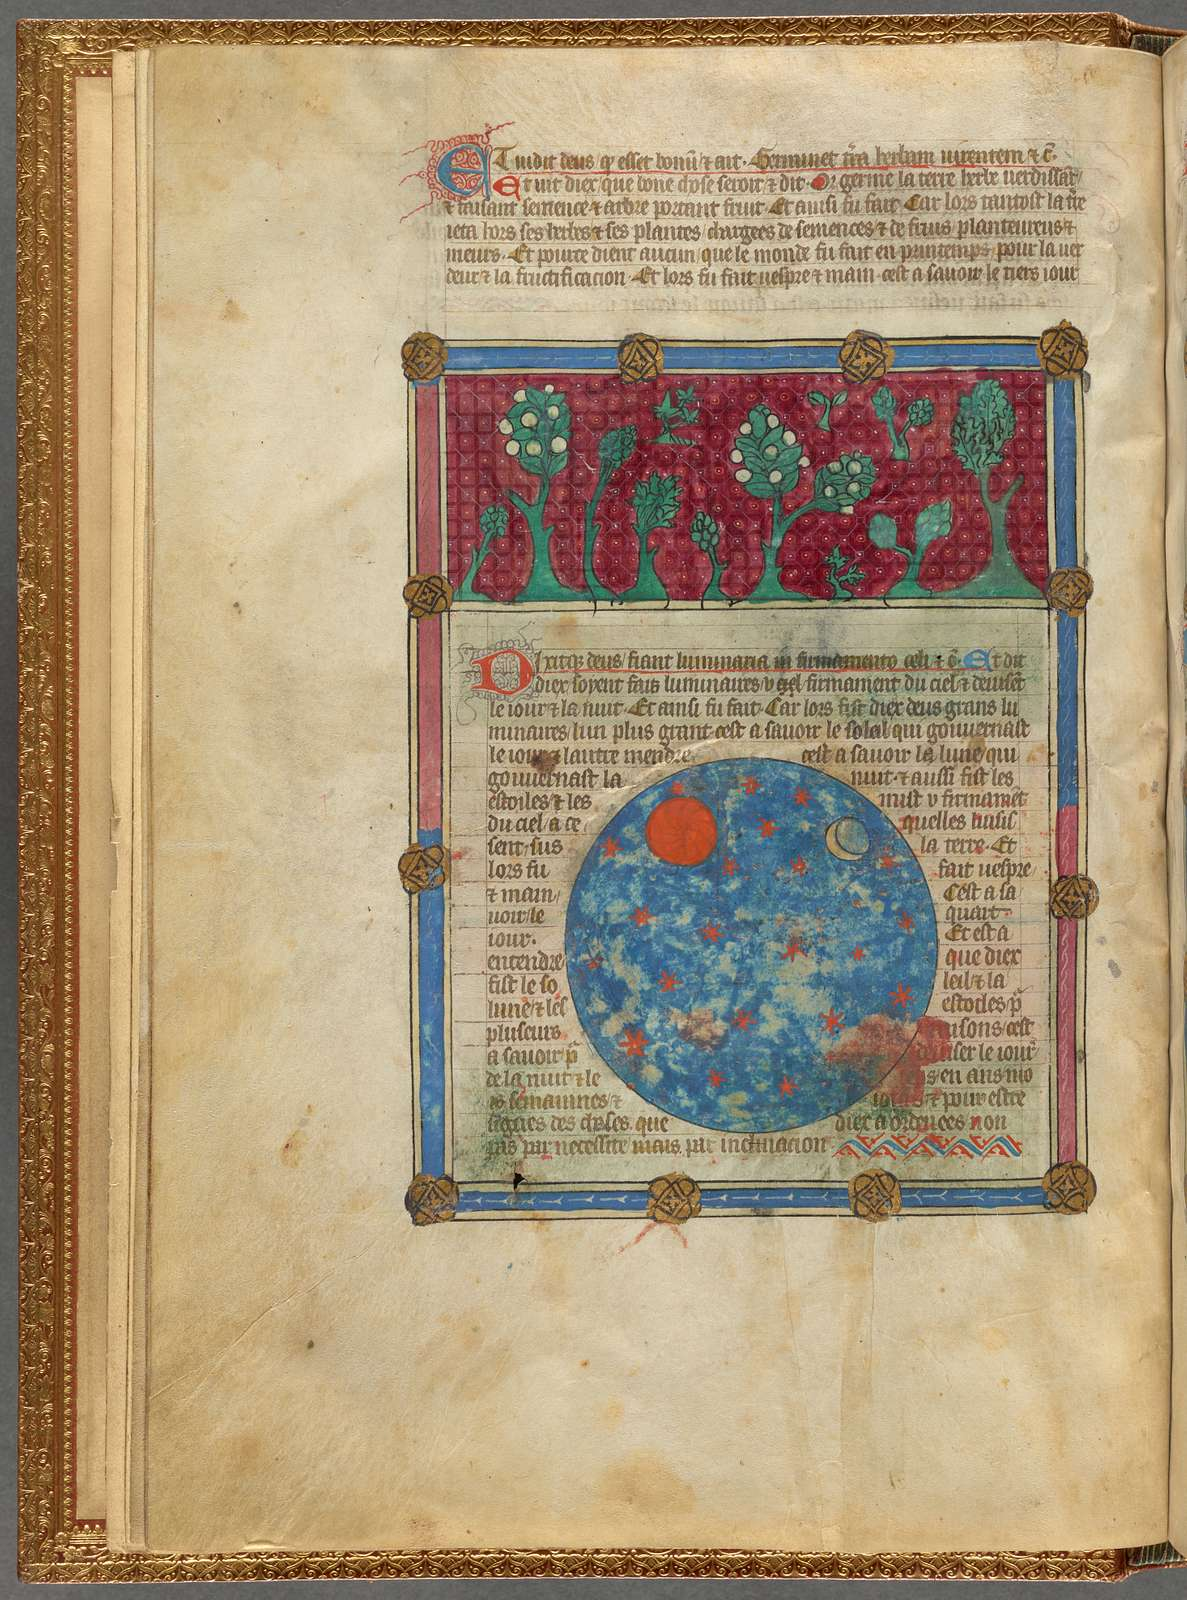 Miniature of flora on the earth and stars in the heavens, with text, initials, placemarkers, linefiller, fol. 4v